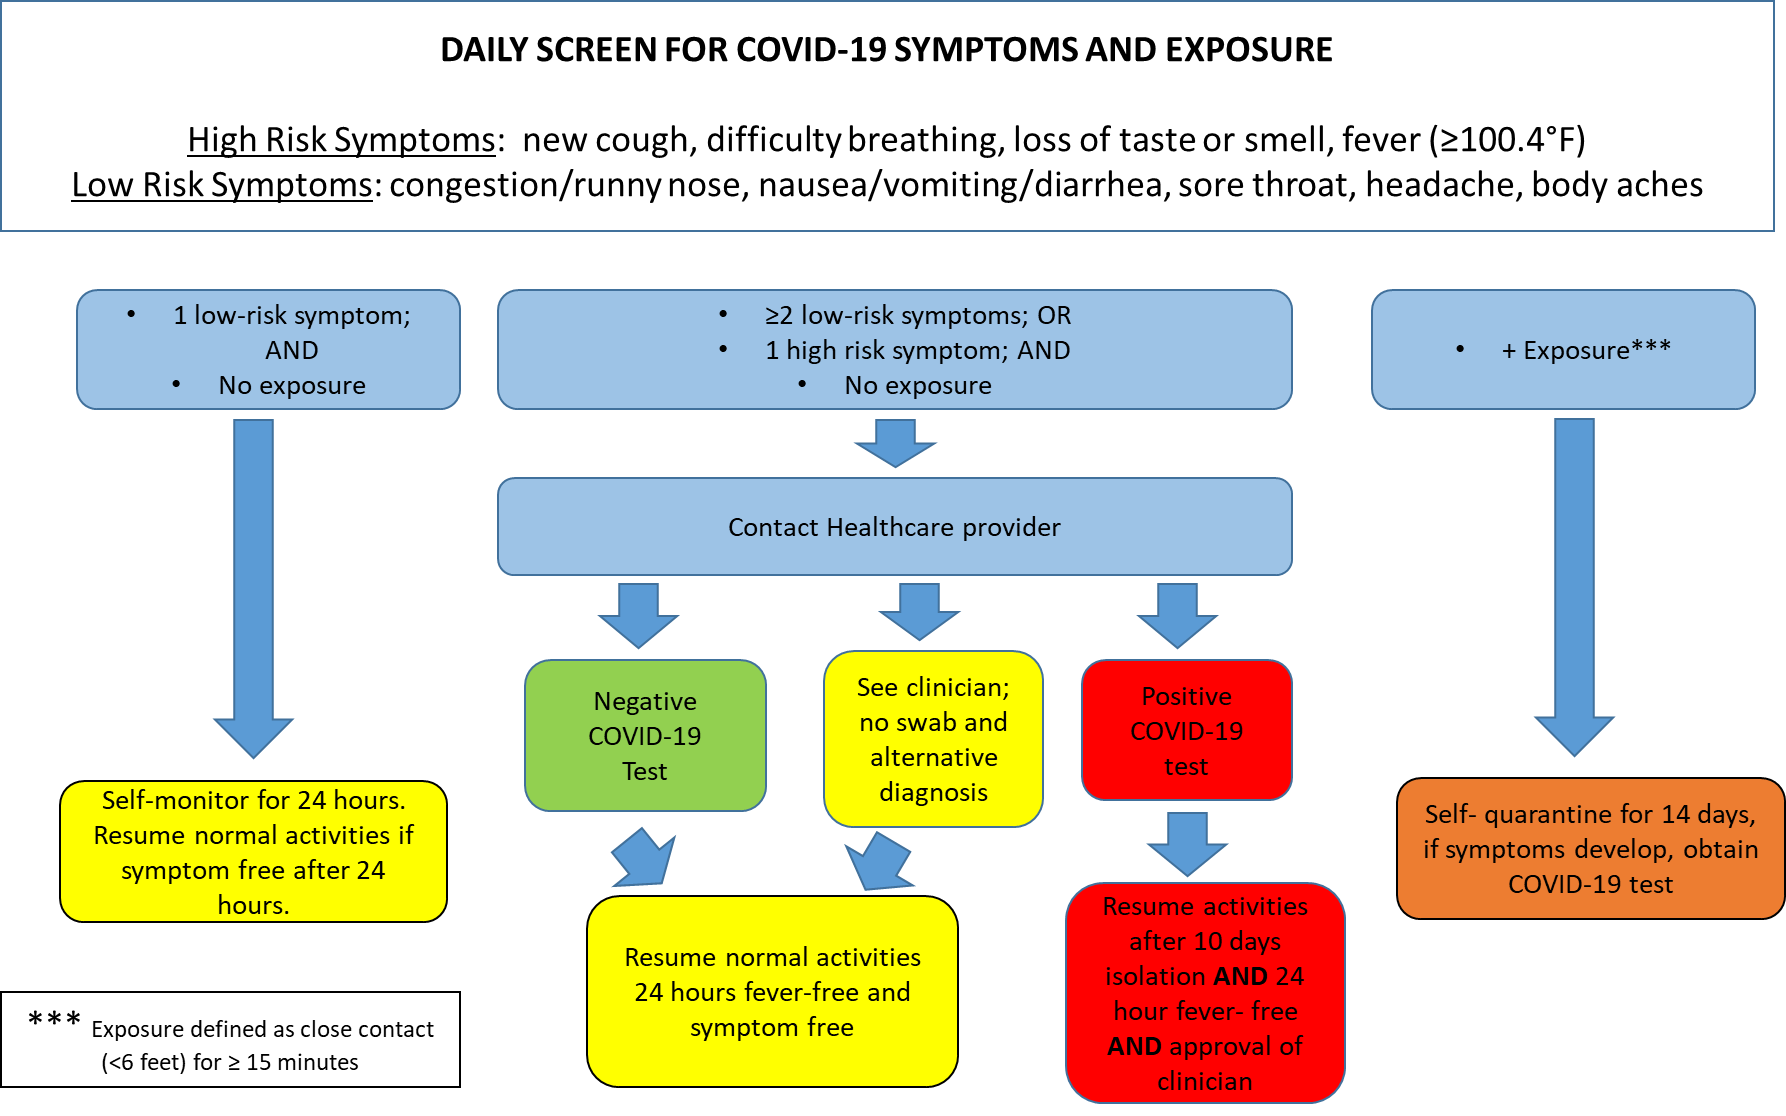 Daily Screen for COVID-19 Symptoms and Exposure